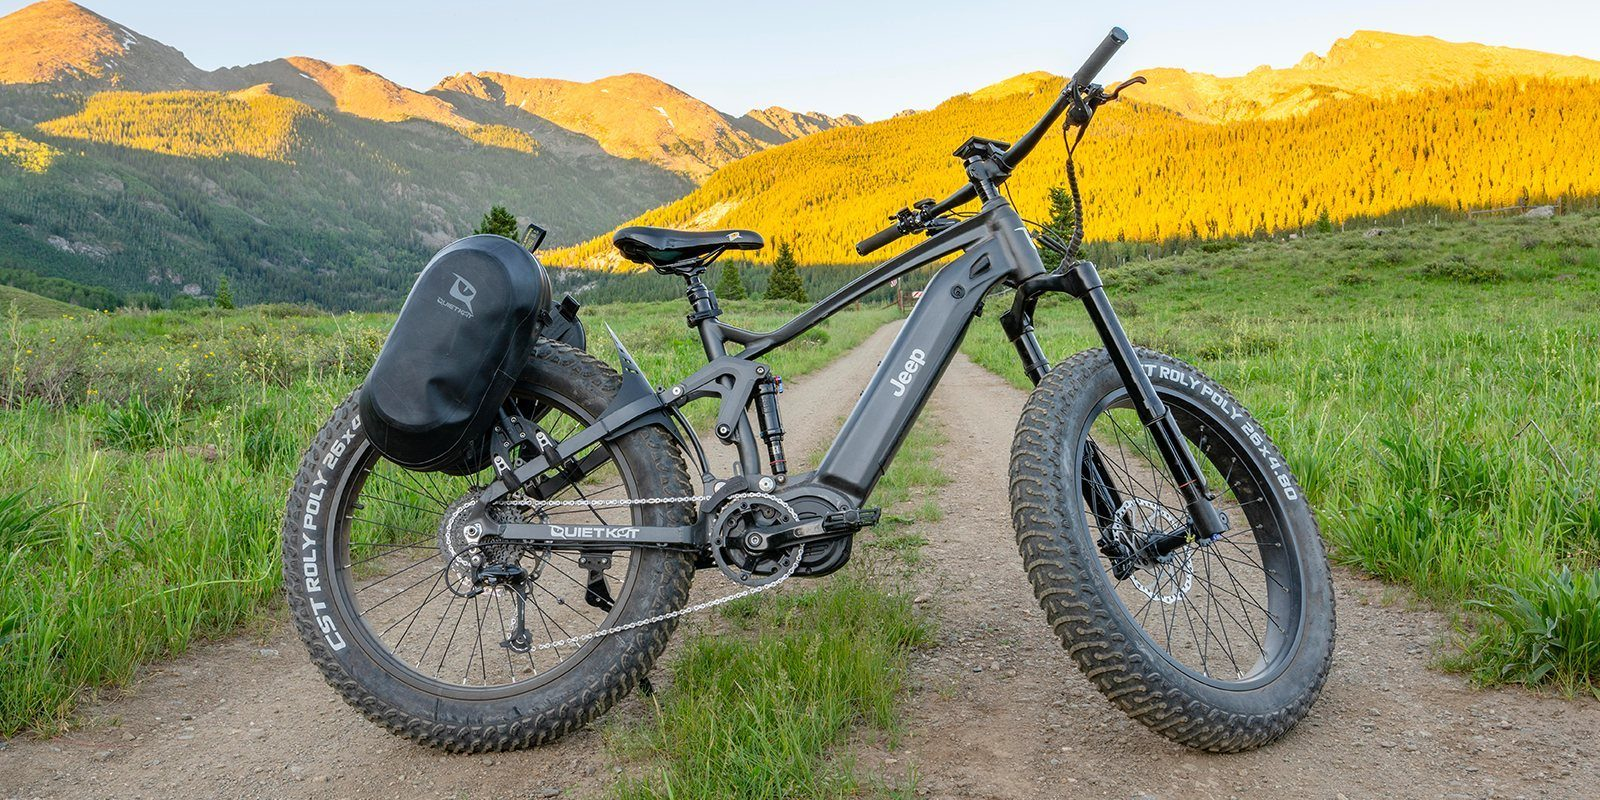 highpowered e-bike,